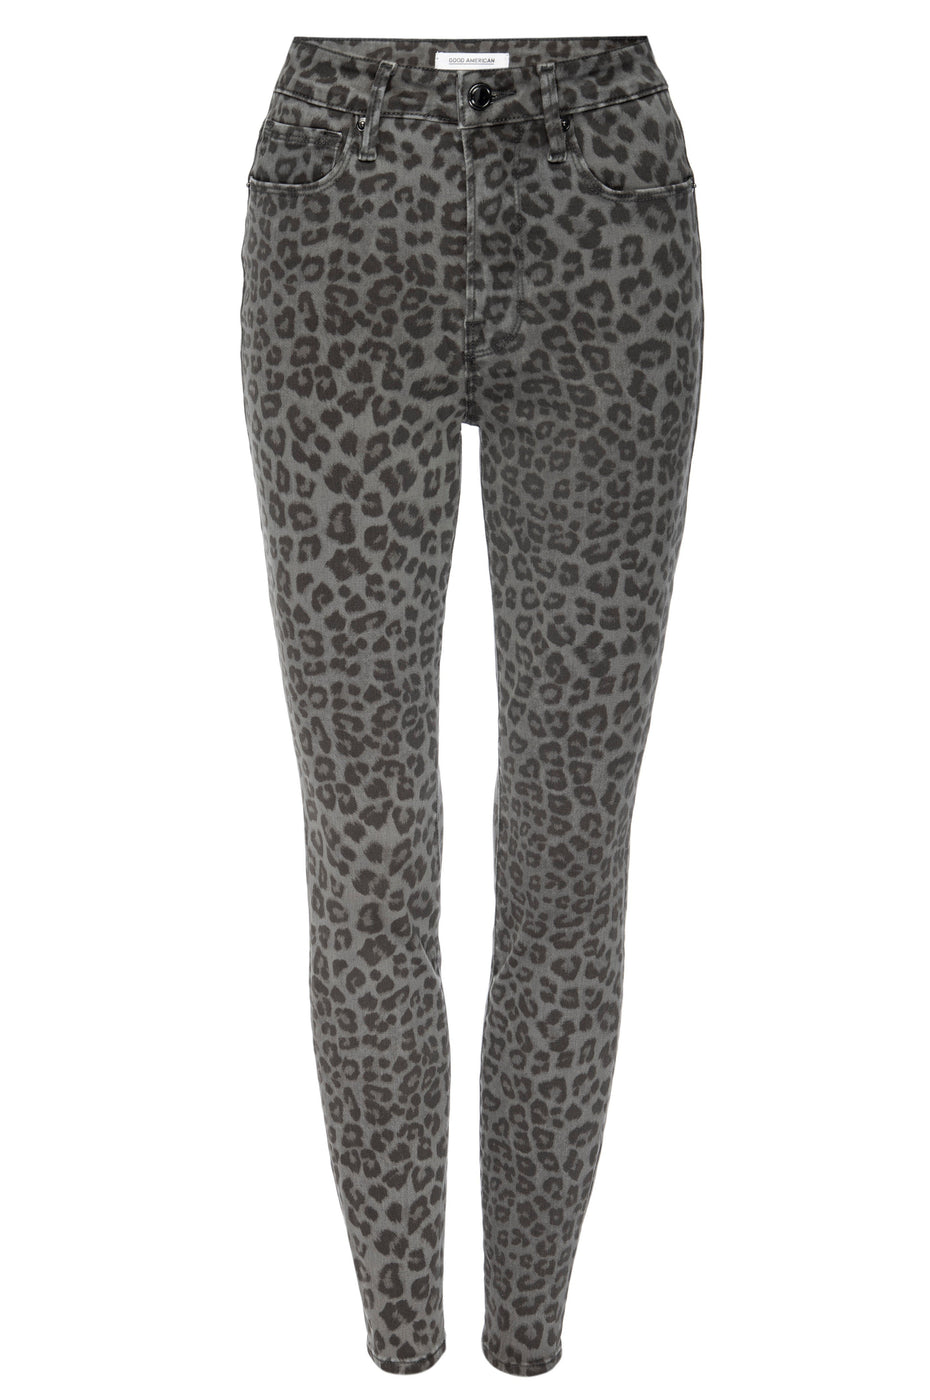 GOOD LEGS | GREY LEOPARD001